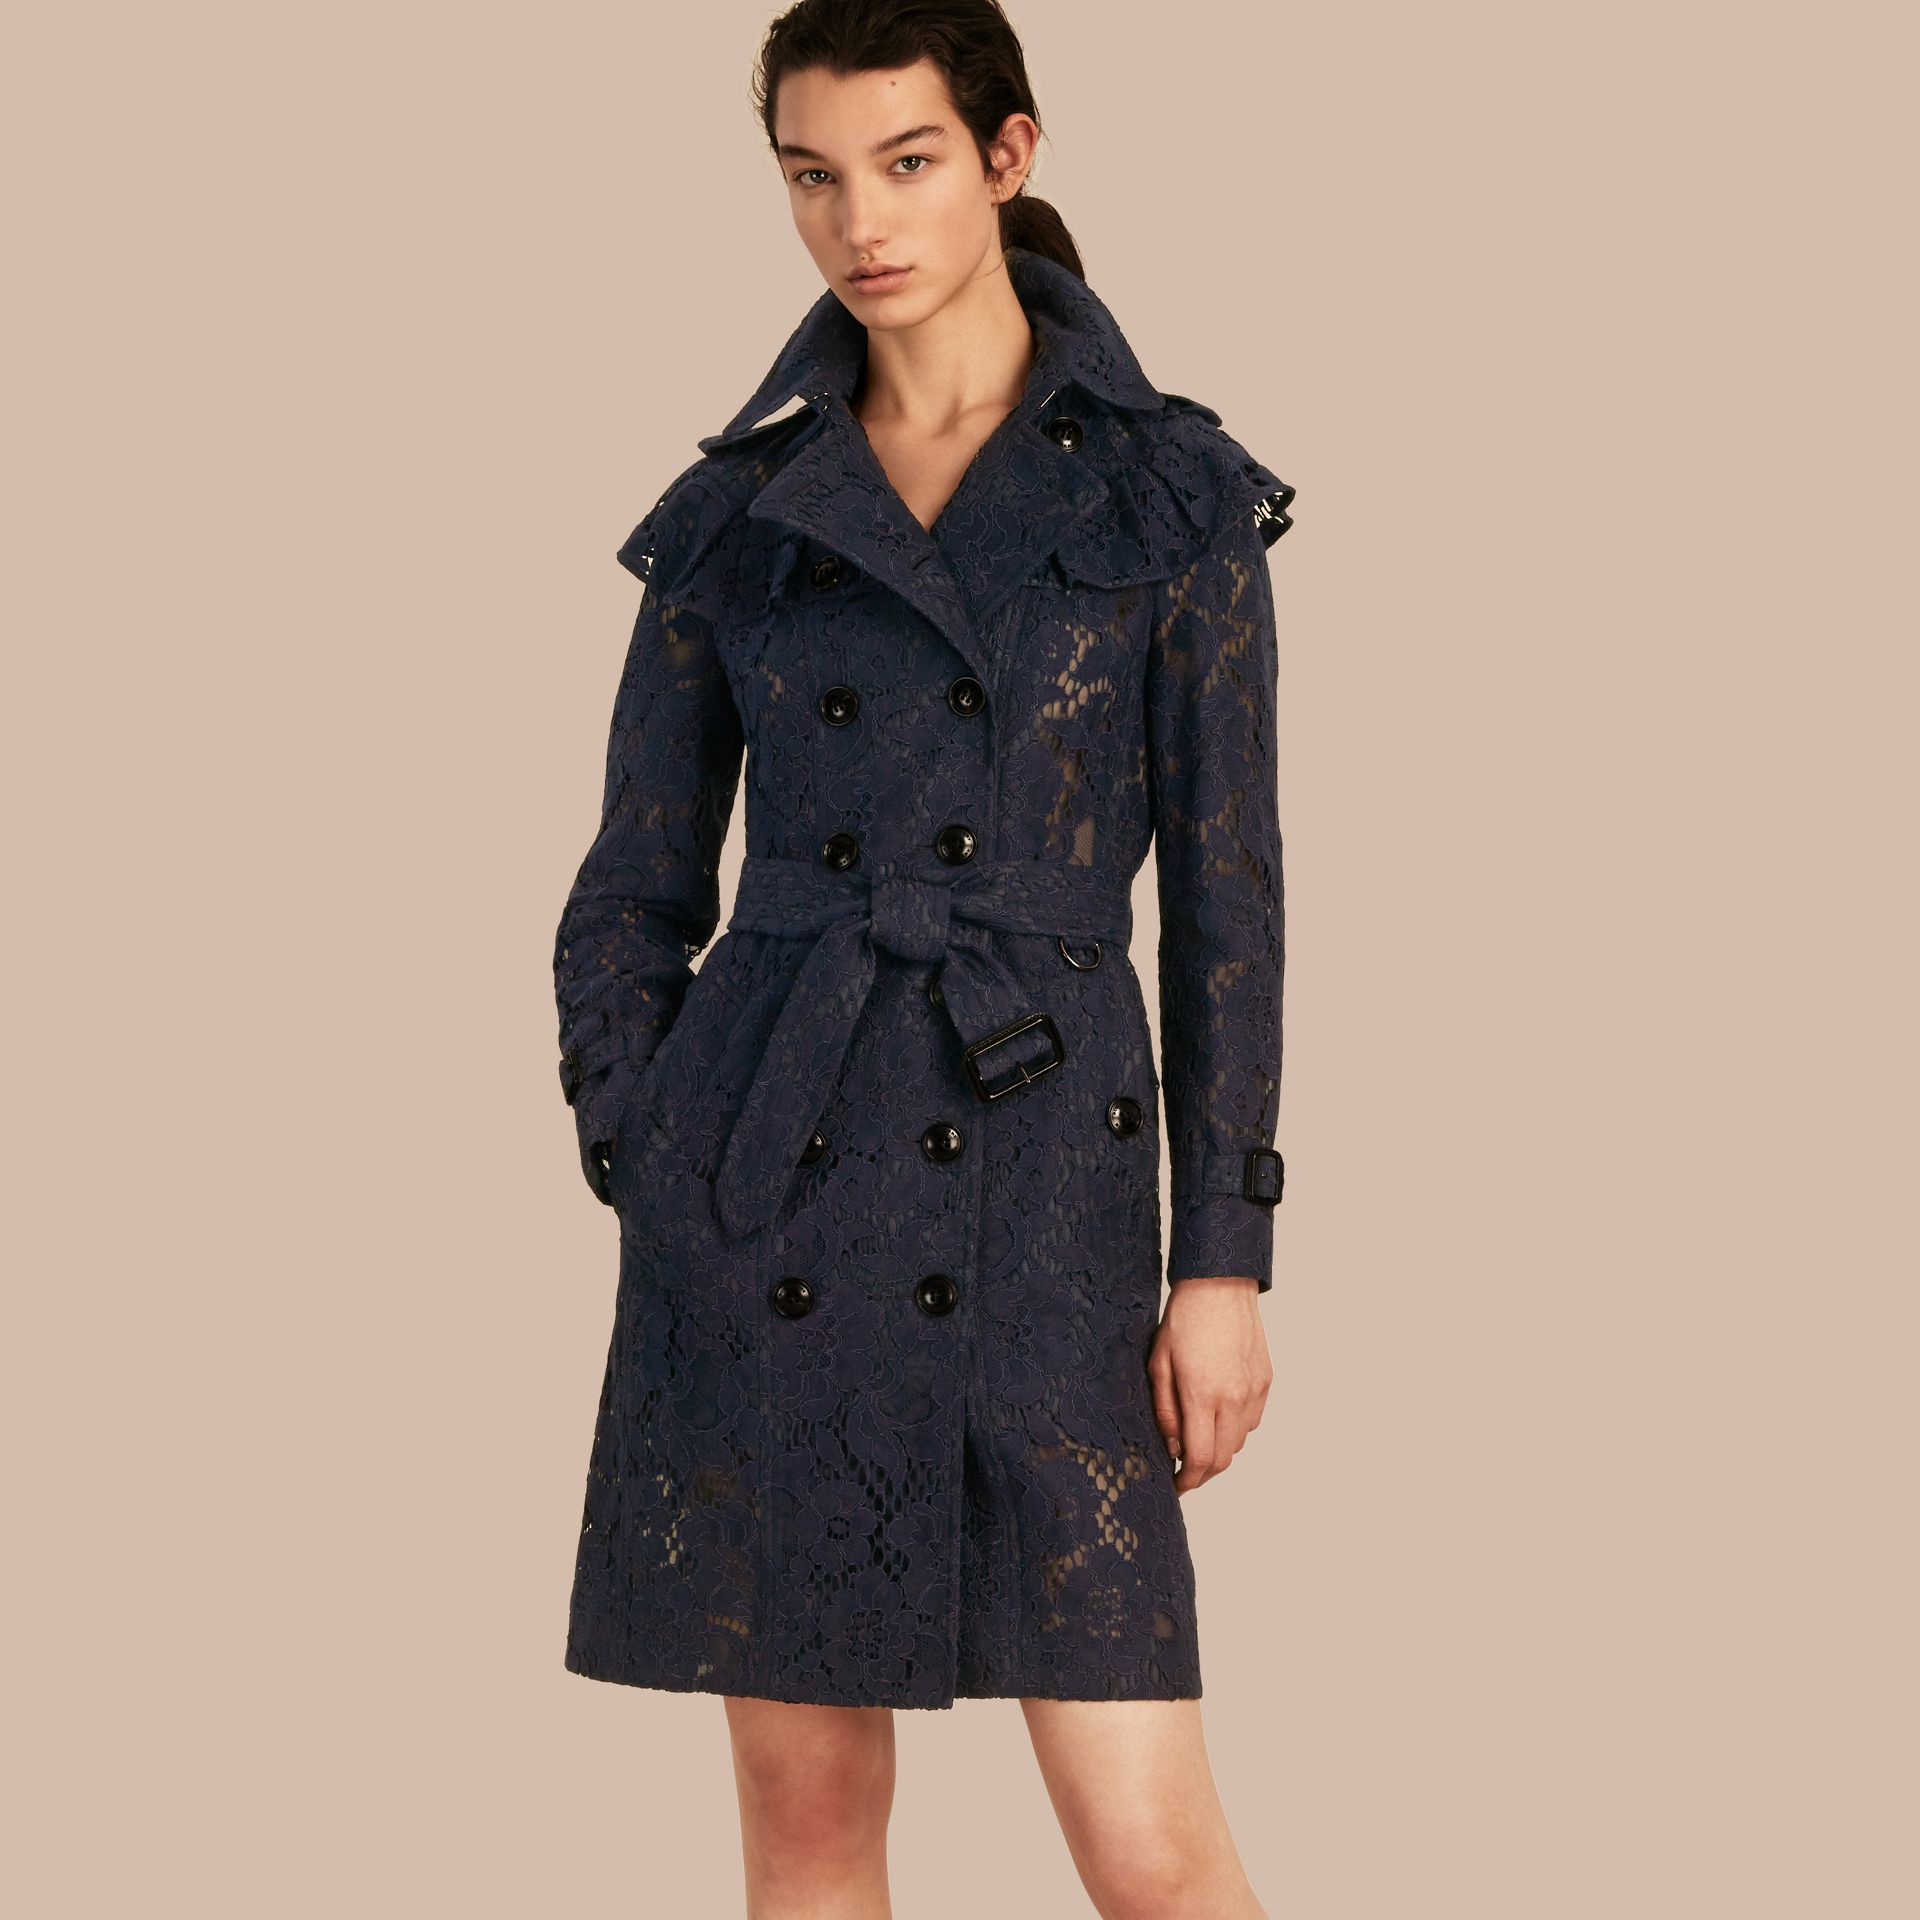 Ruffle Detail Macramé Lace Trench Coat Navy - gallery image 1